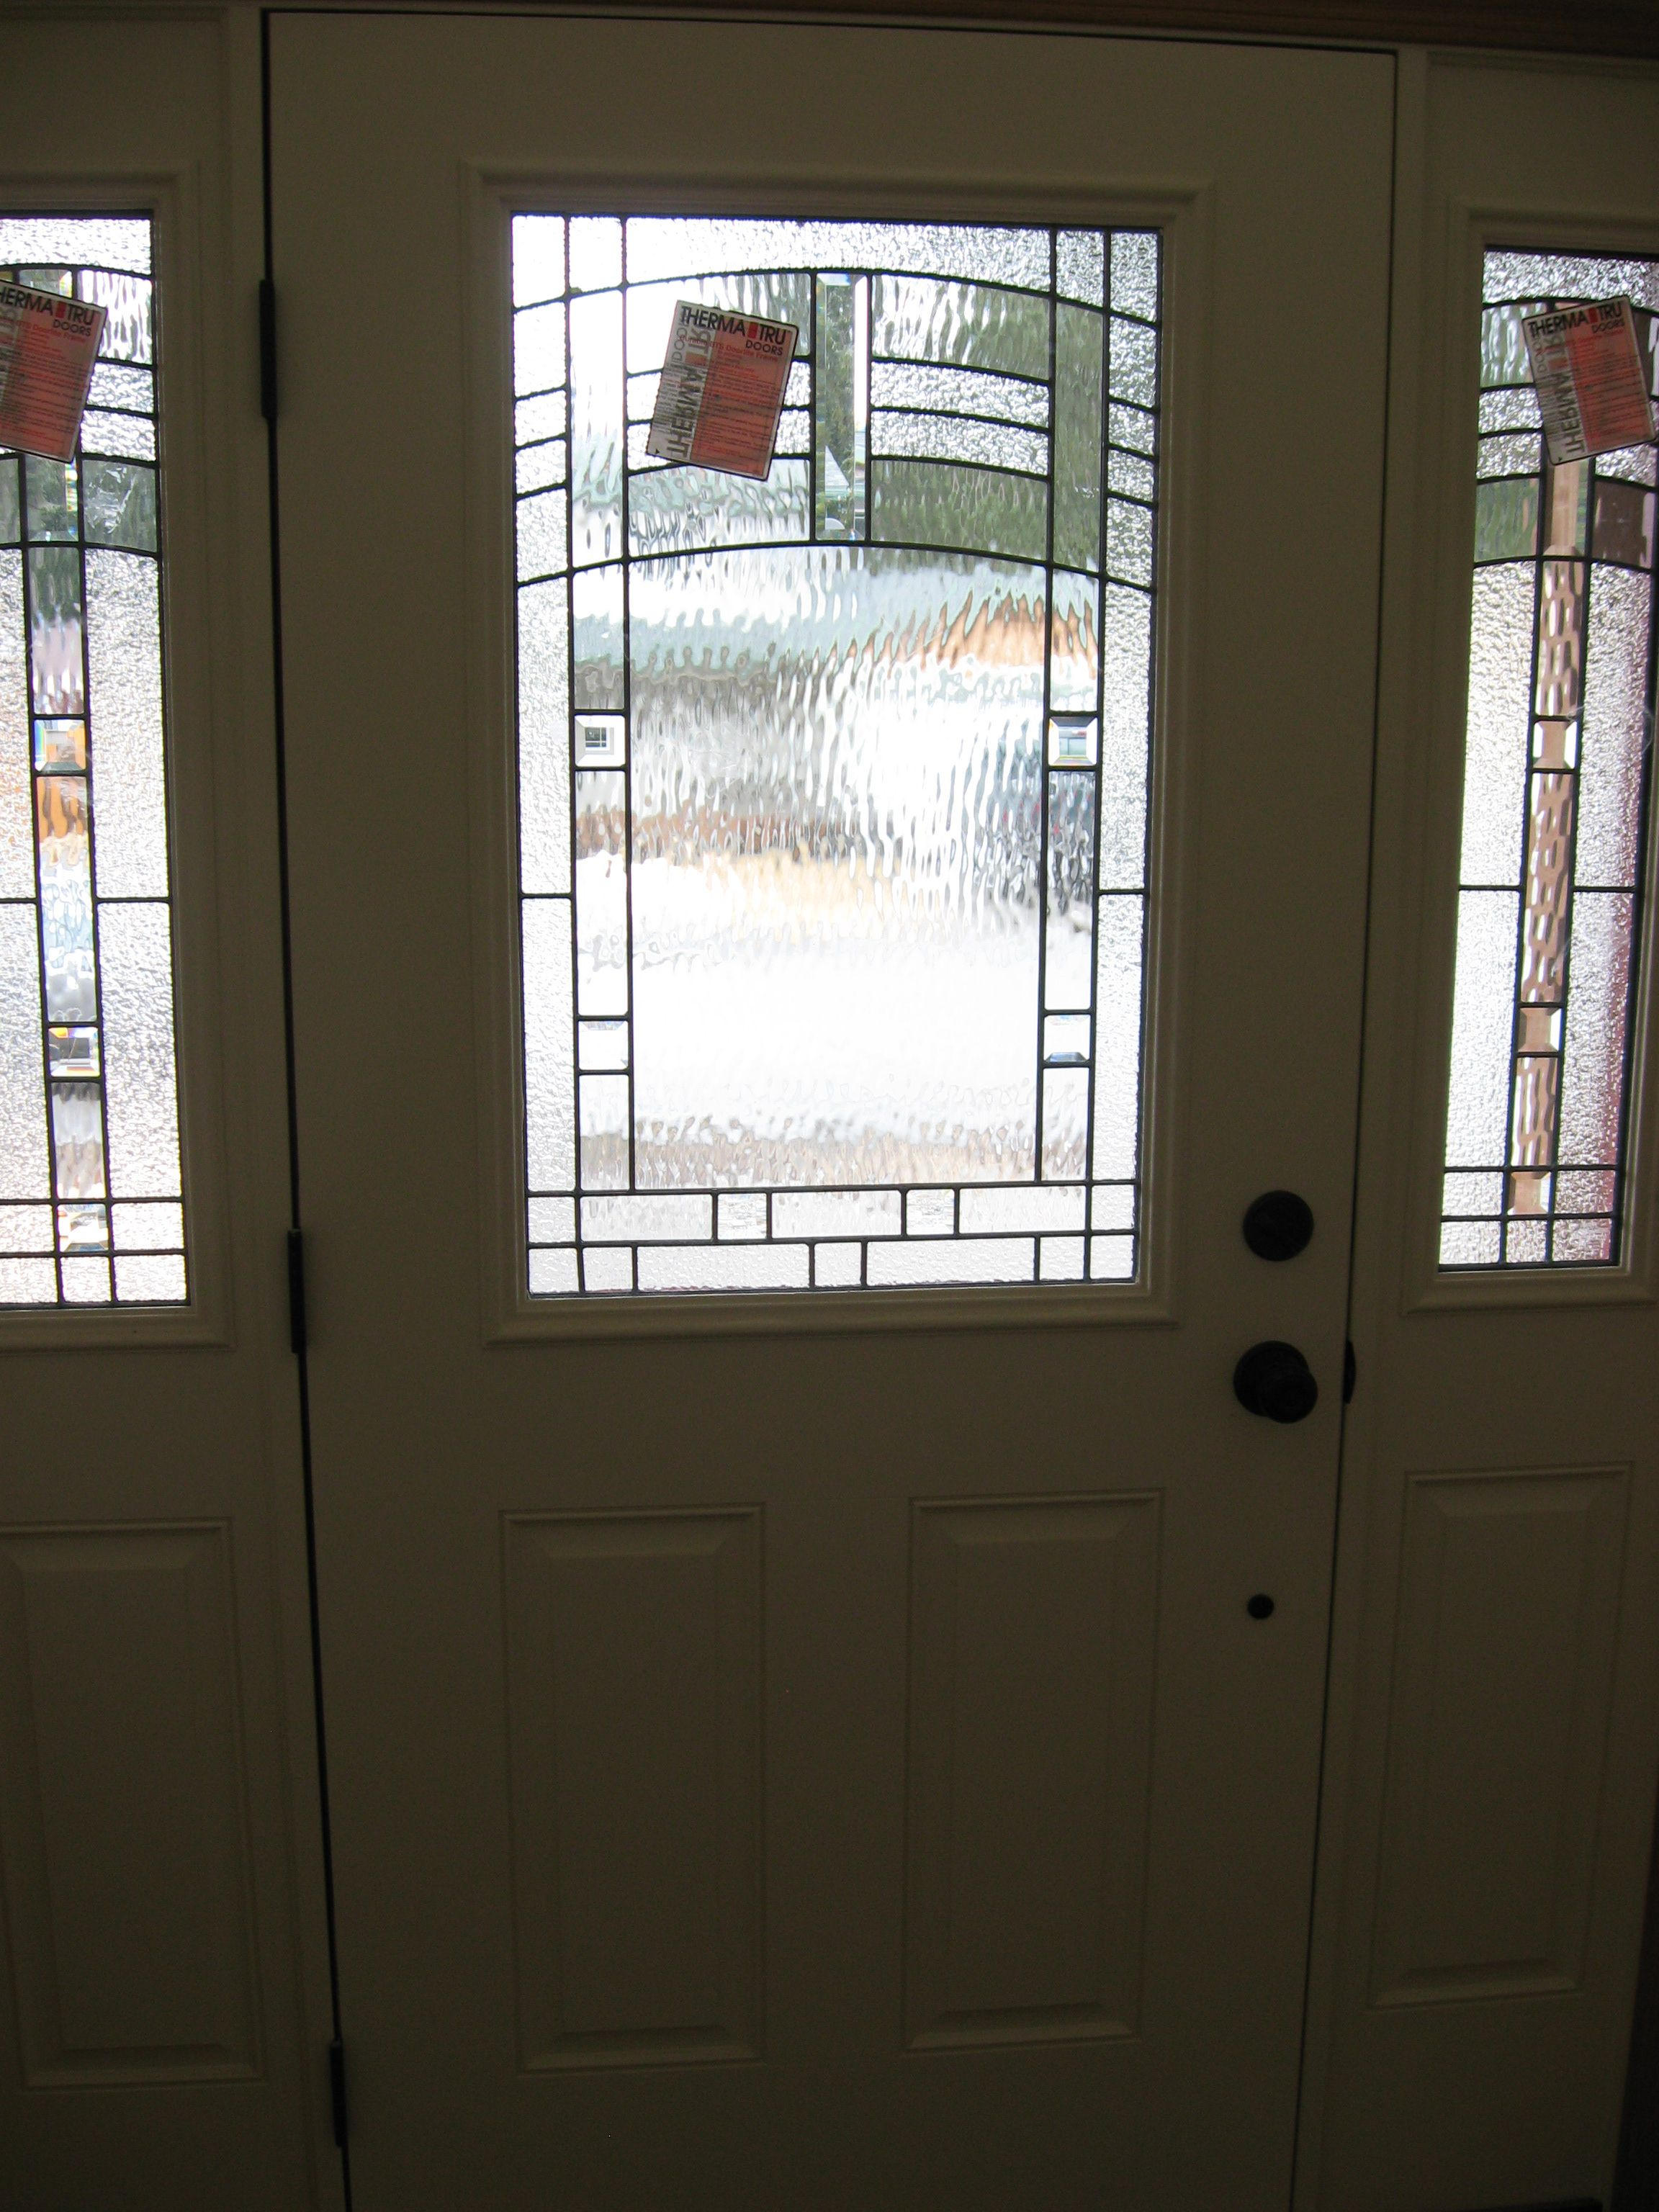 I found this Therma Tru door with Maple Park glass on a house under construction. This photo is from inside looking out. You get daylight but also privacy.